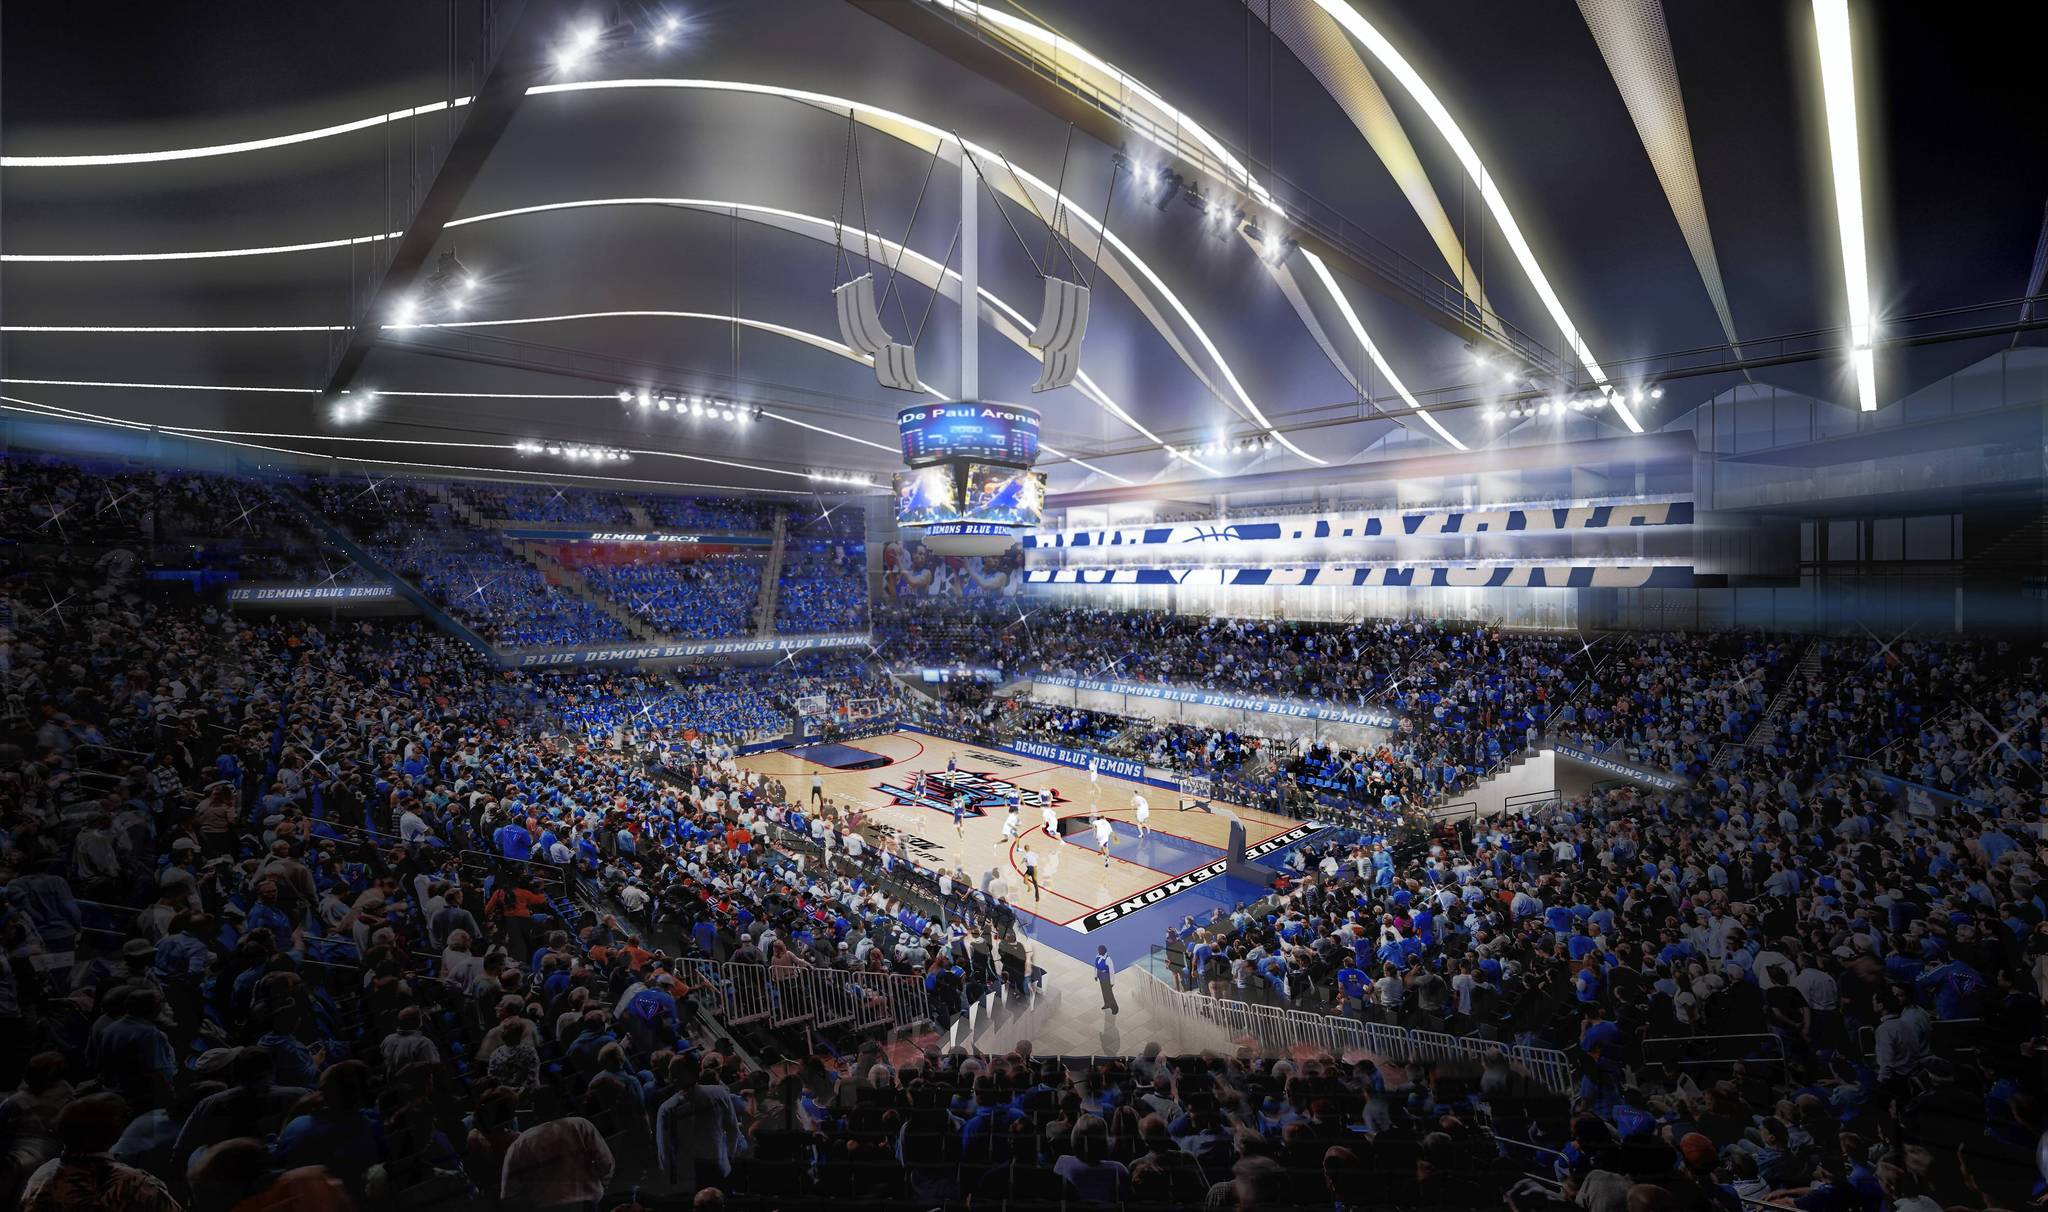 DePaul delays debut of basketball arena